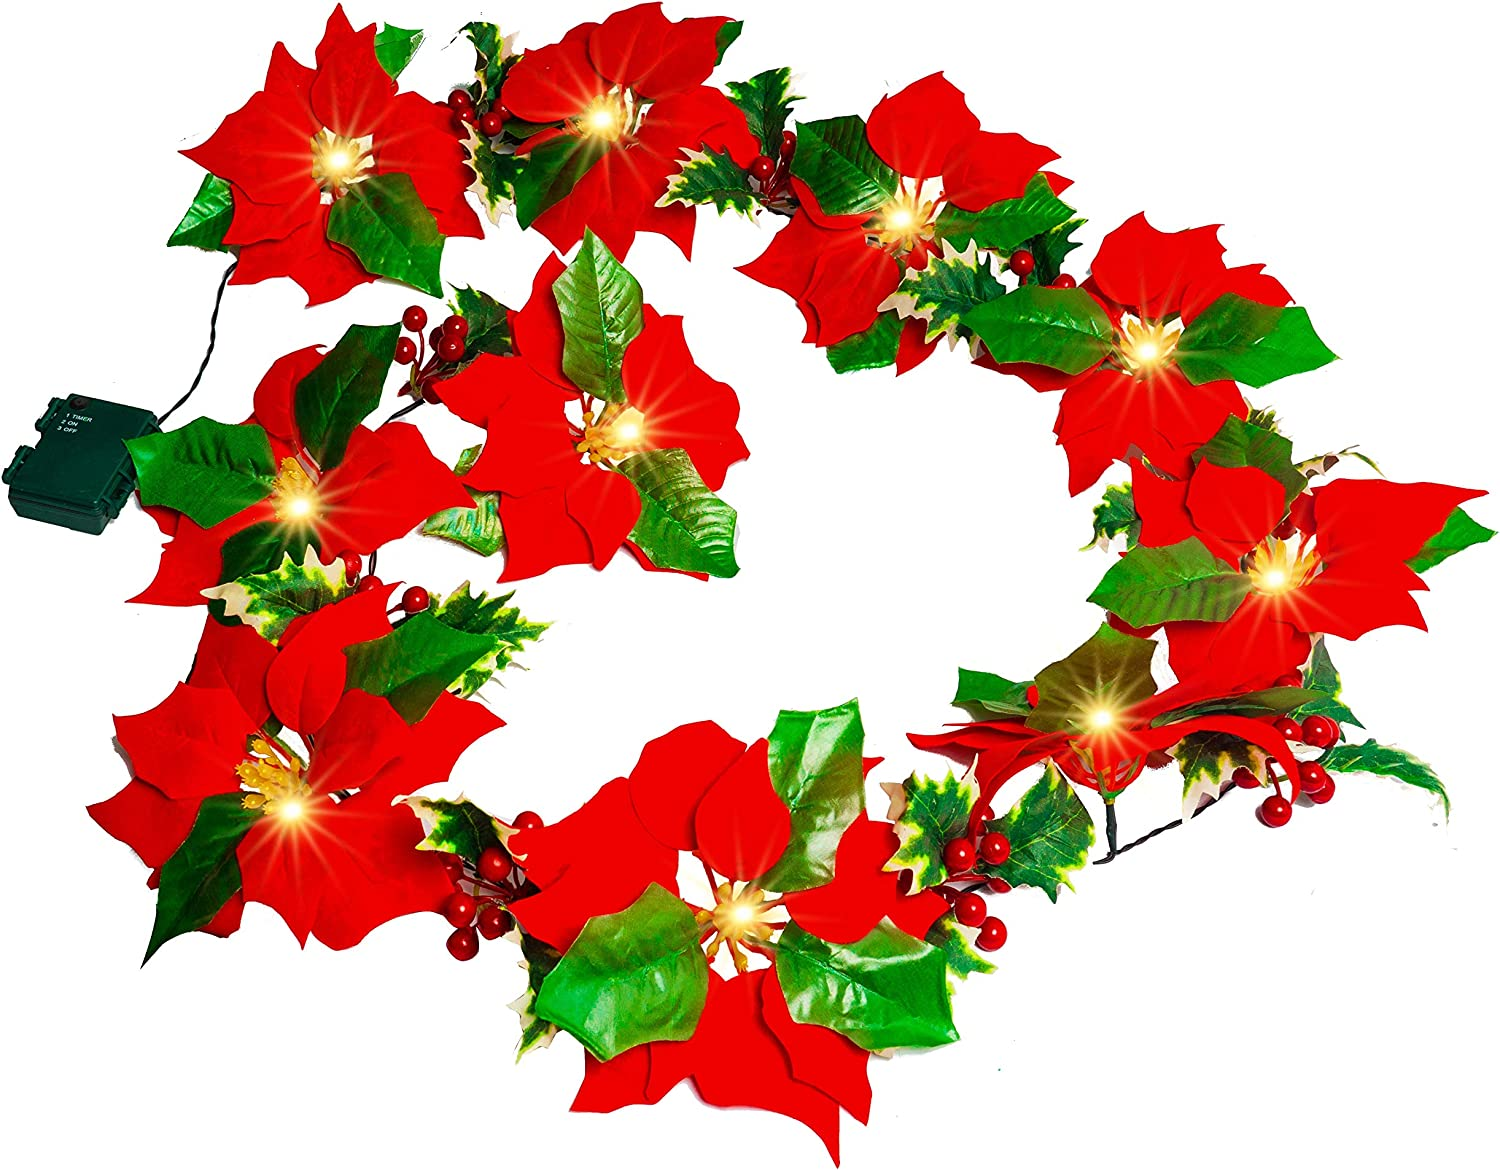 FUNPENY Christmas Poinsettia Garland, 7 FT 10 LED Velvet Artificial Flower Xmas String Lights with Red Berries and Holly Leaves, Christmas Decor Indoor Outdoor Mantle Holiday Decor